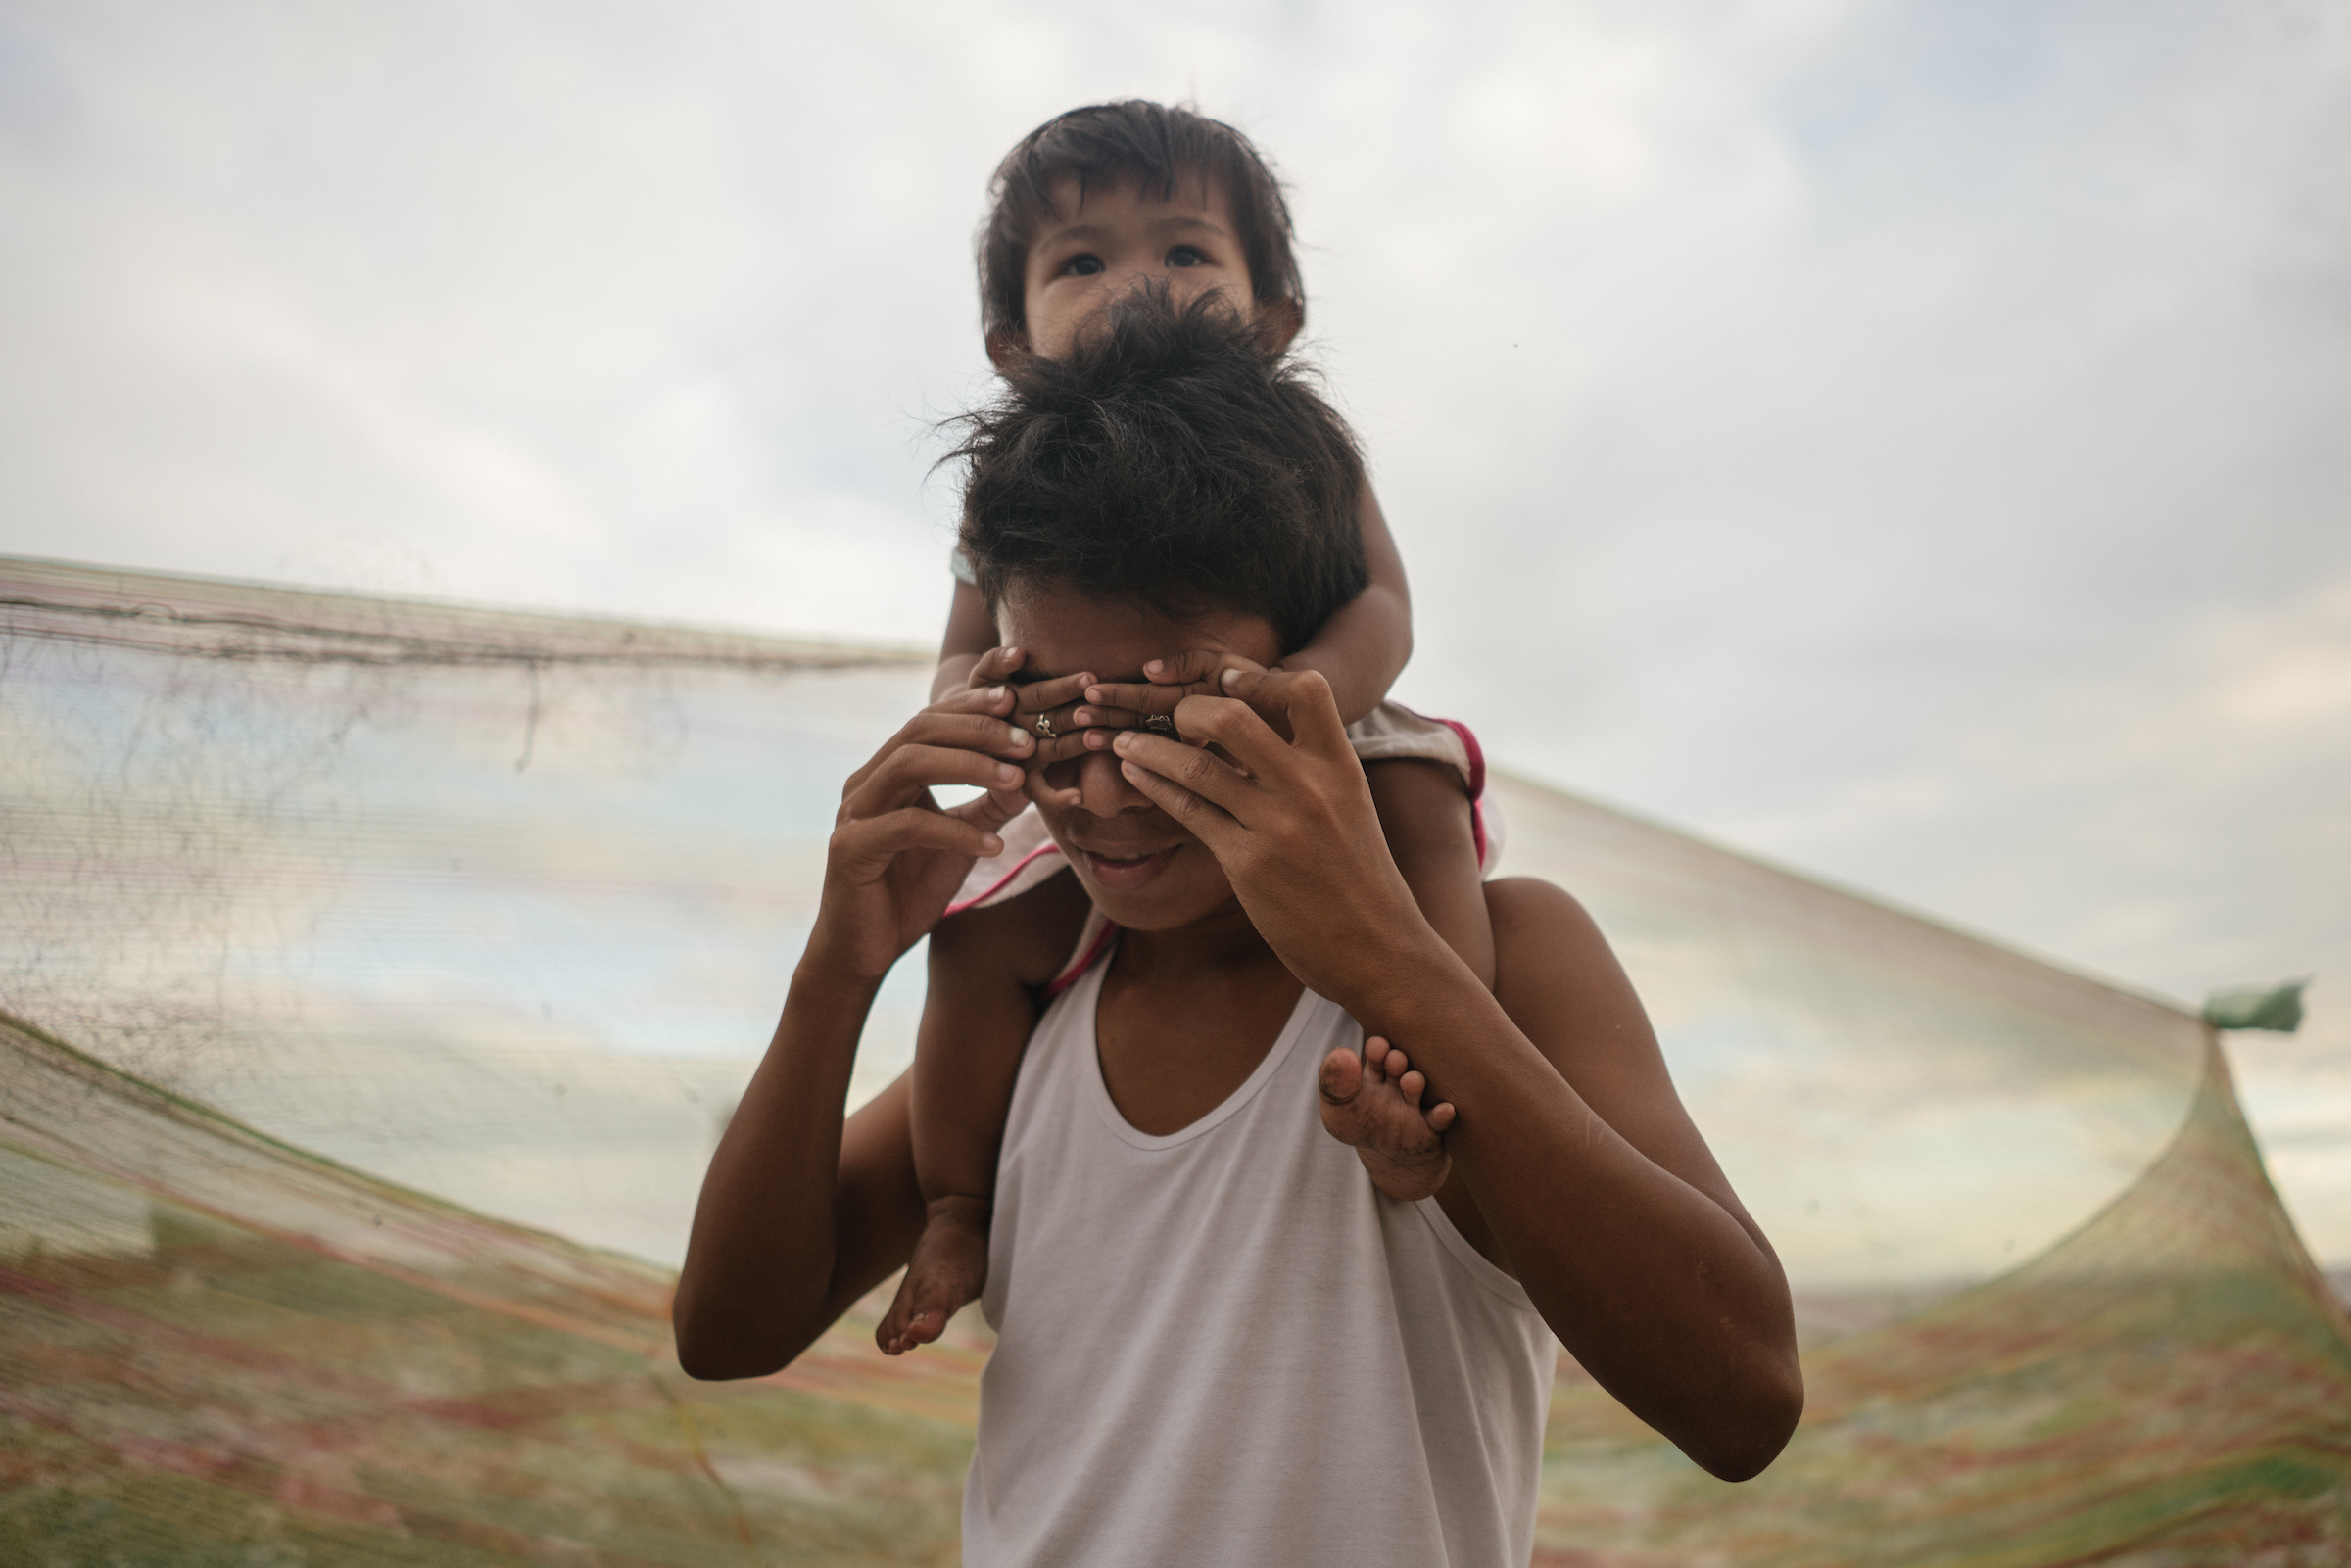 A Filipino man and a child are seen in Tondo, which has one of the highest concentrations of urban poor settlers in Metro Manila, Philippines.